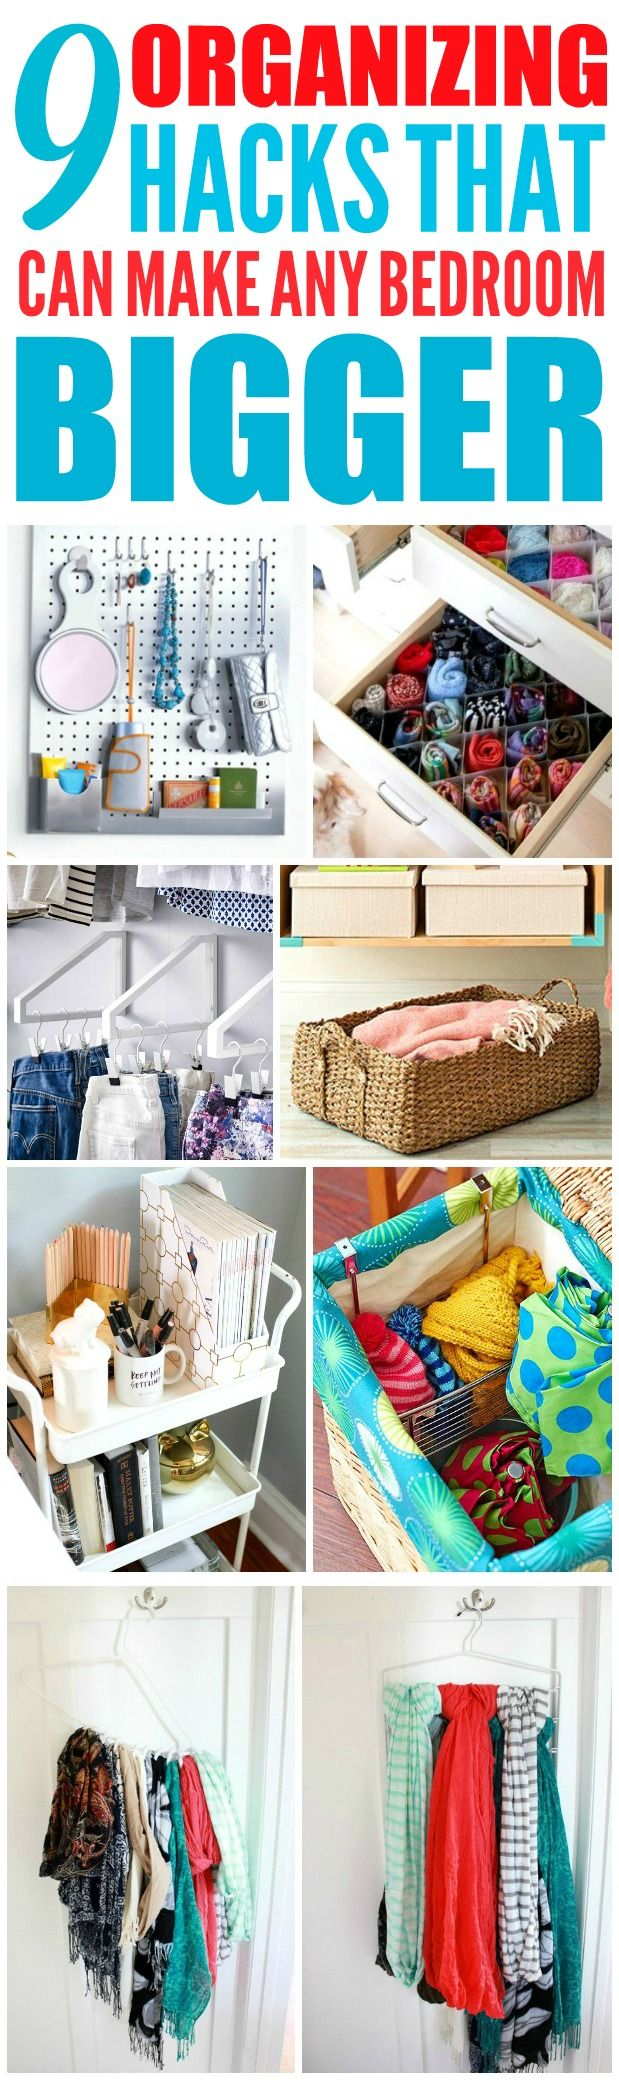 Organization Tips For Small Bedrooms 17 Best Ideas About Small Bedroom Organization On Pinterest